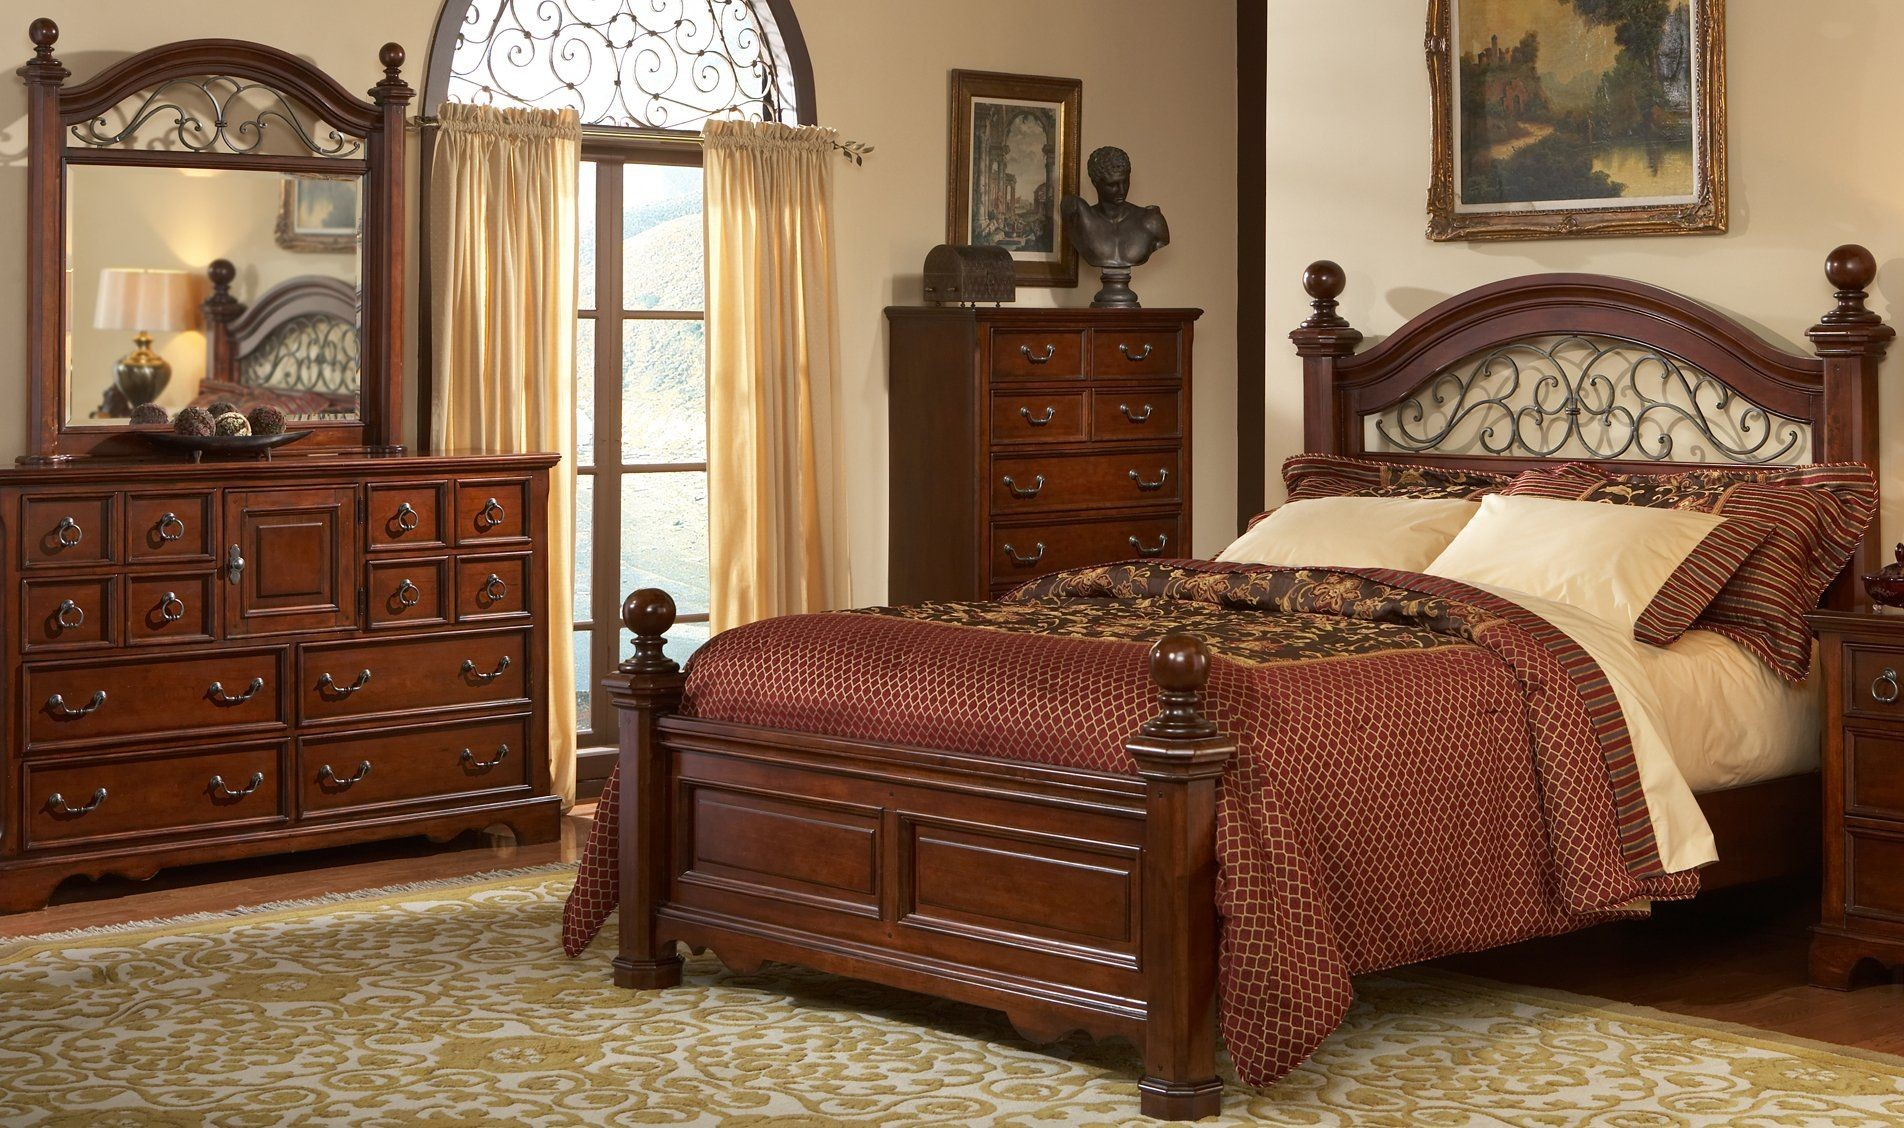 Gentil Wood And Wrought Iron Headboards